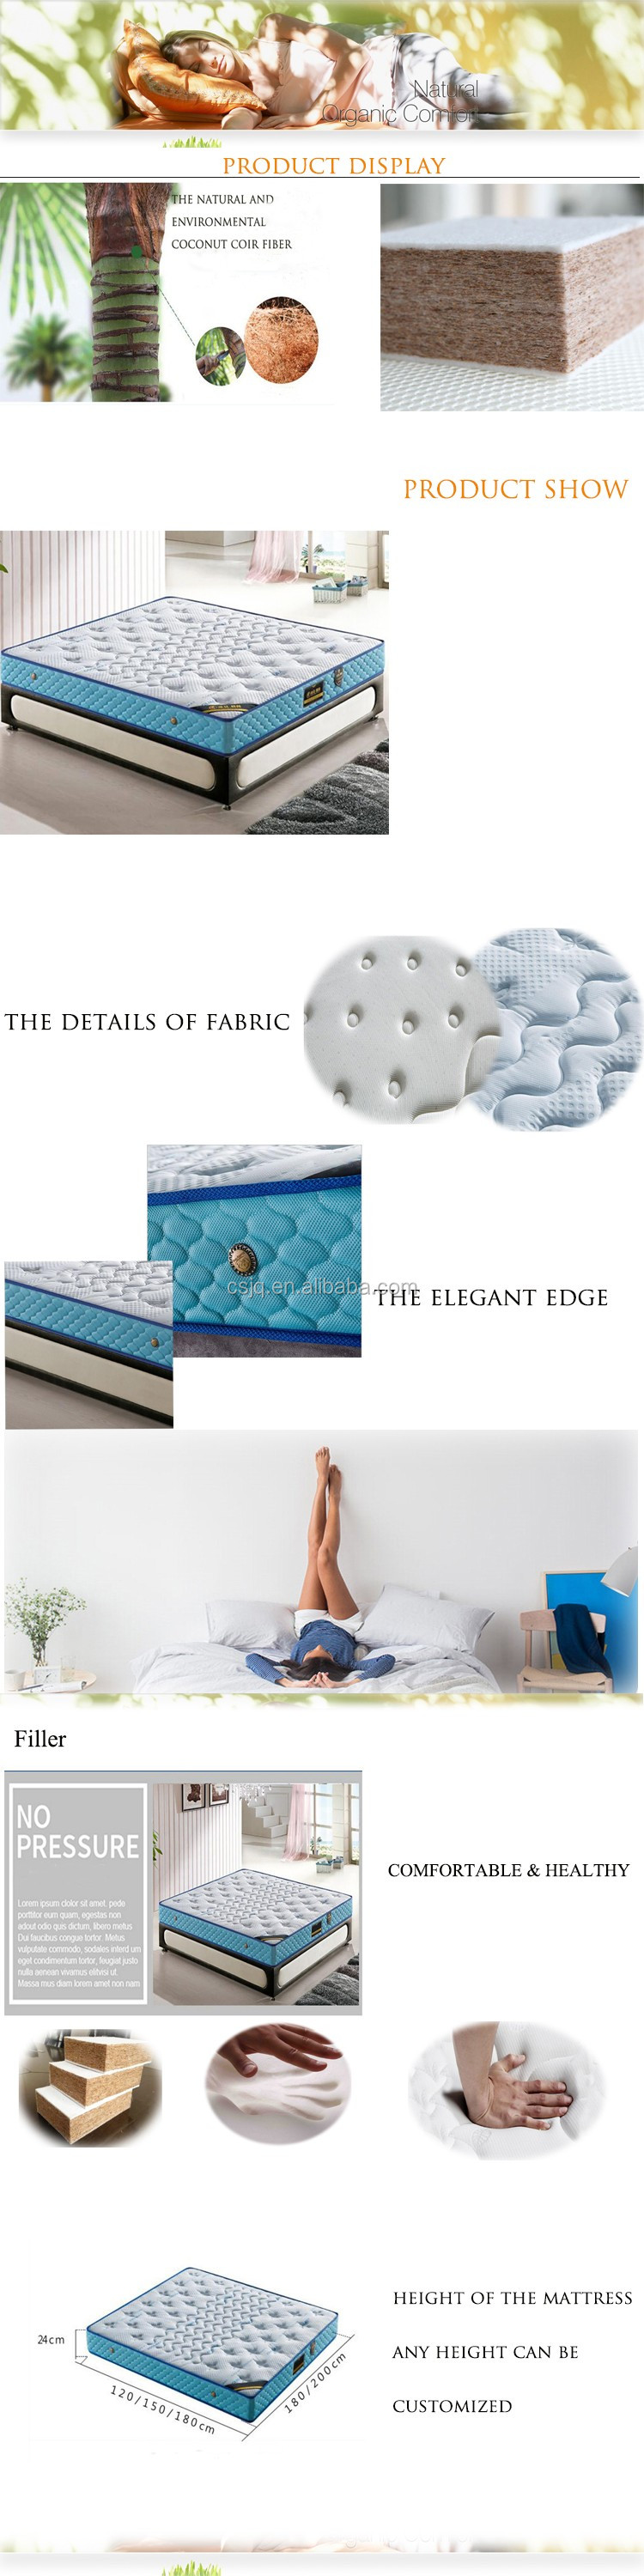 bugs and anti mattress dust zippered waterproof encasement mite bug itm covers for protector bed